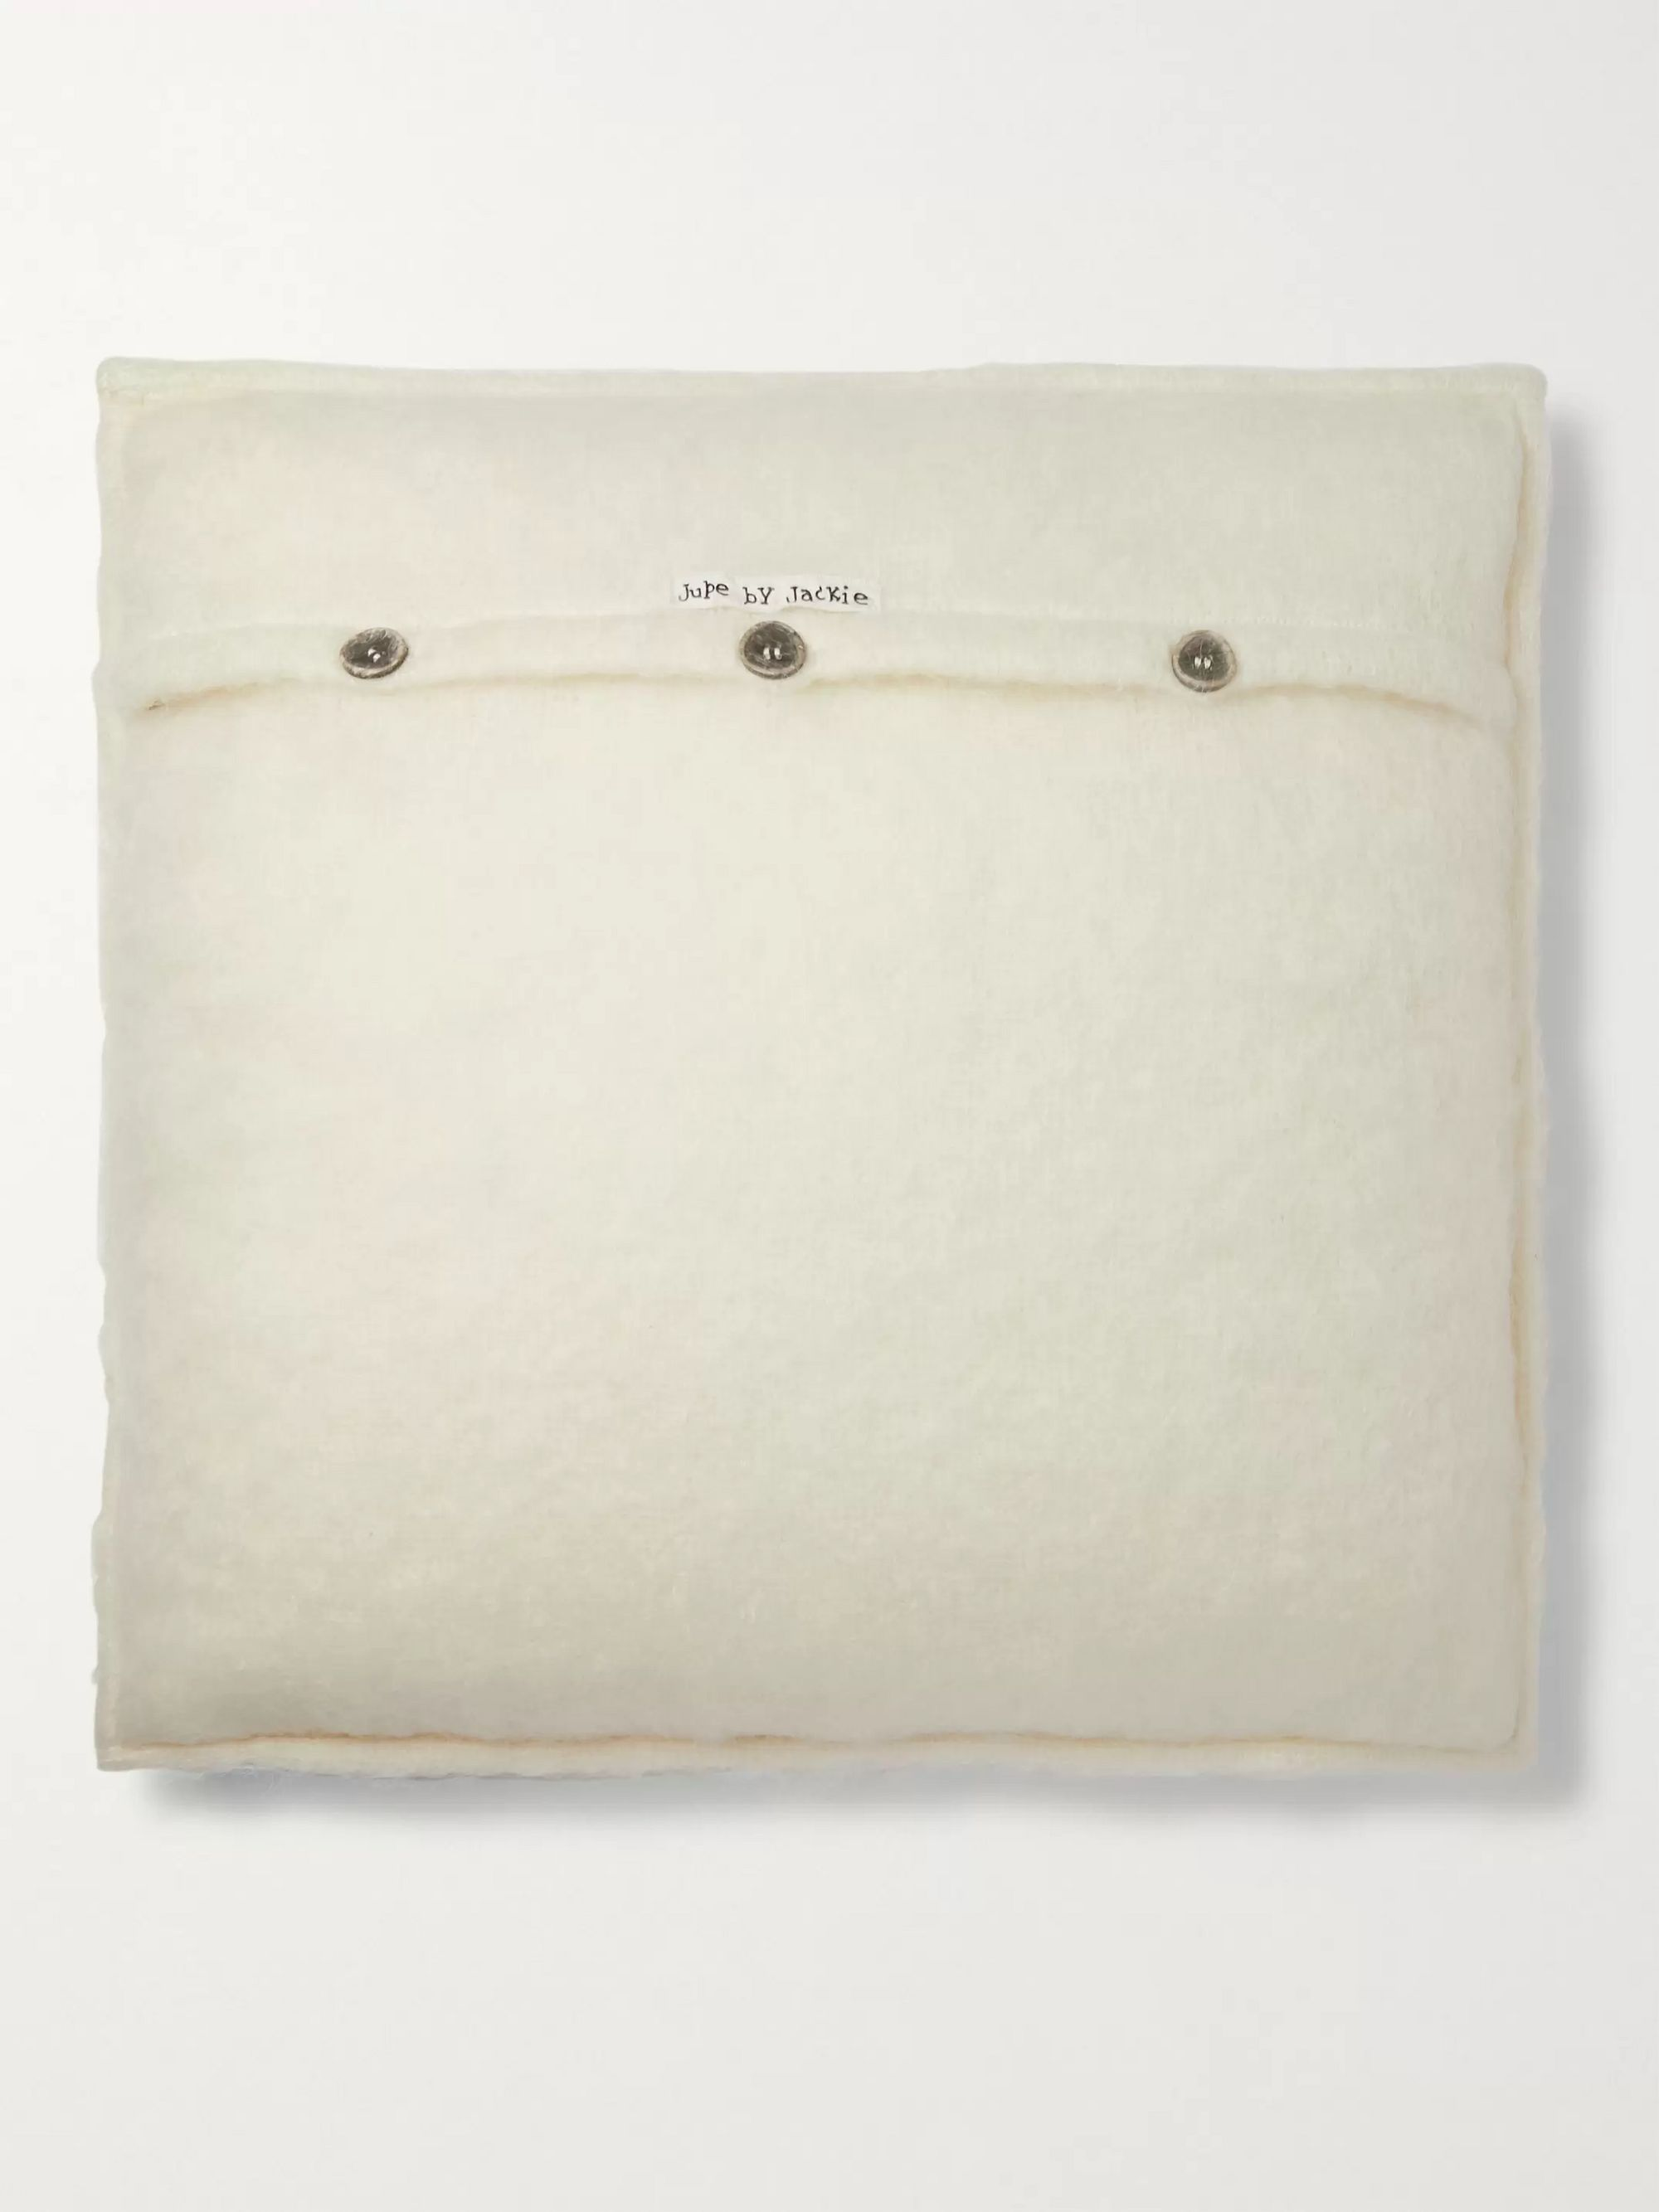 Jupe by Jackie Embroidered Mohair Cushion Cover